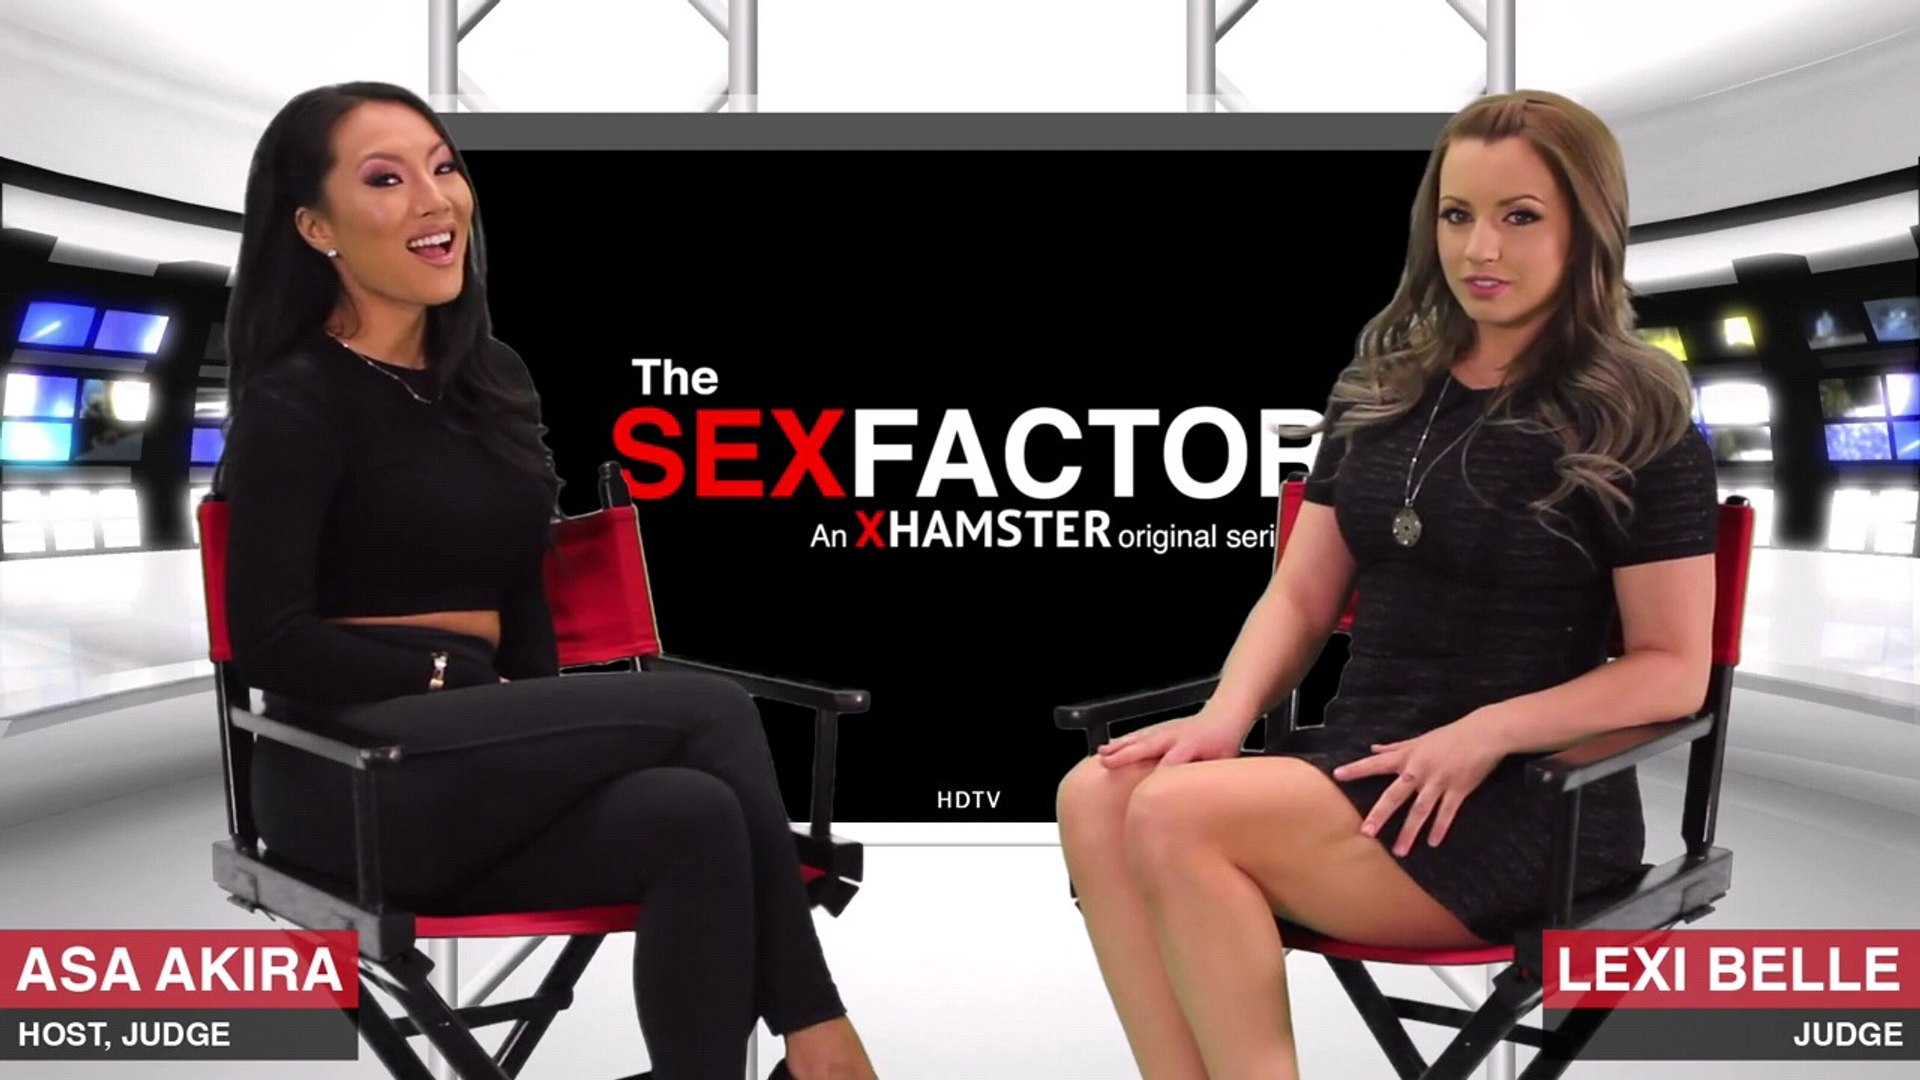 The-Sex-Factor Season 1 Episode 1 : Battle Of The Sexes